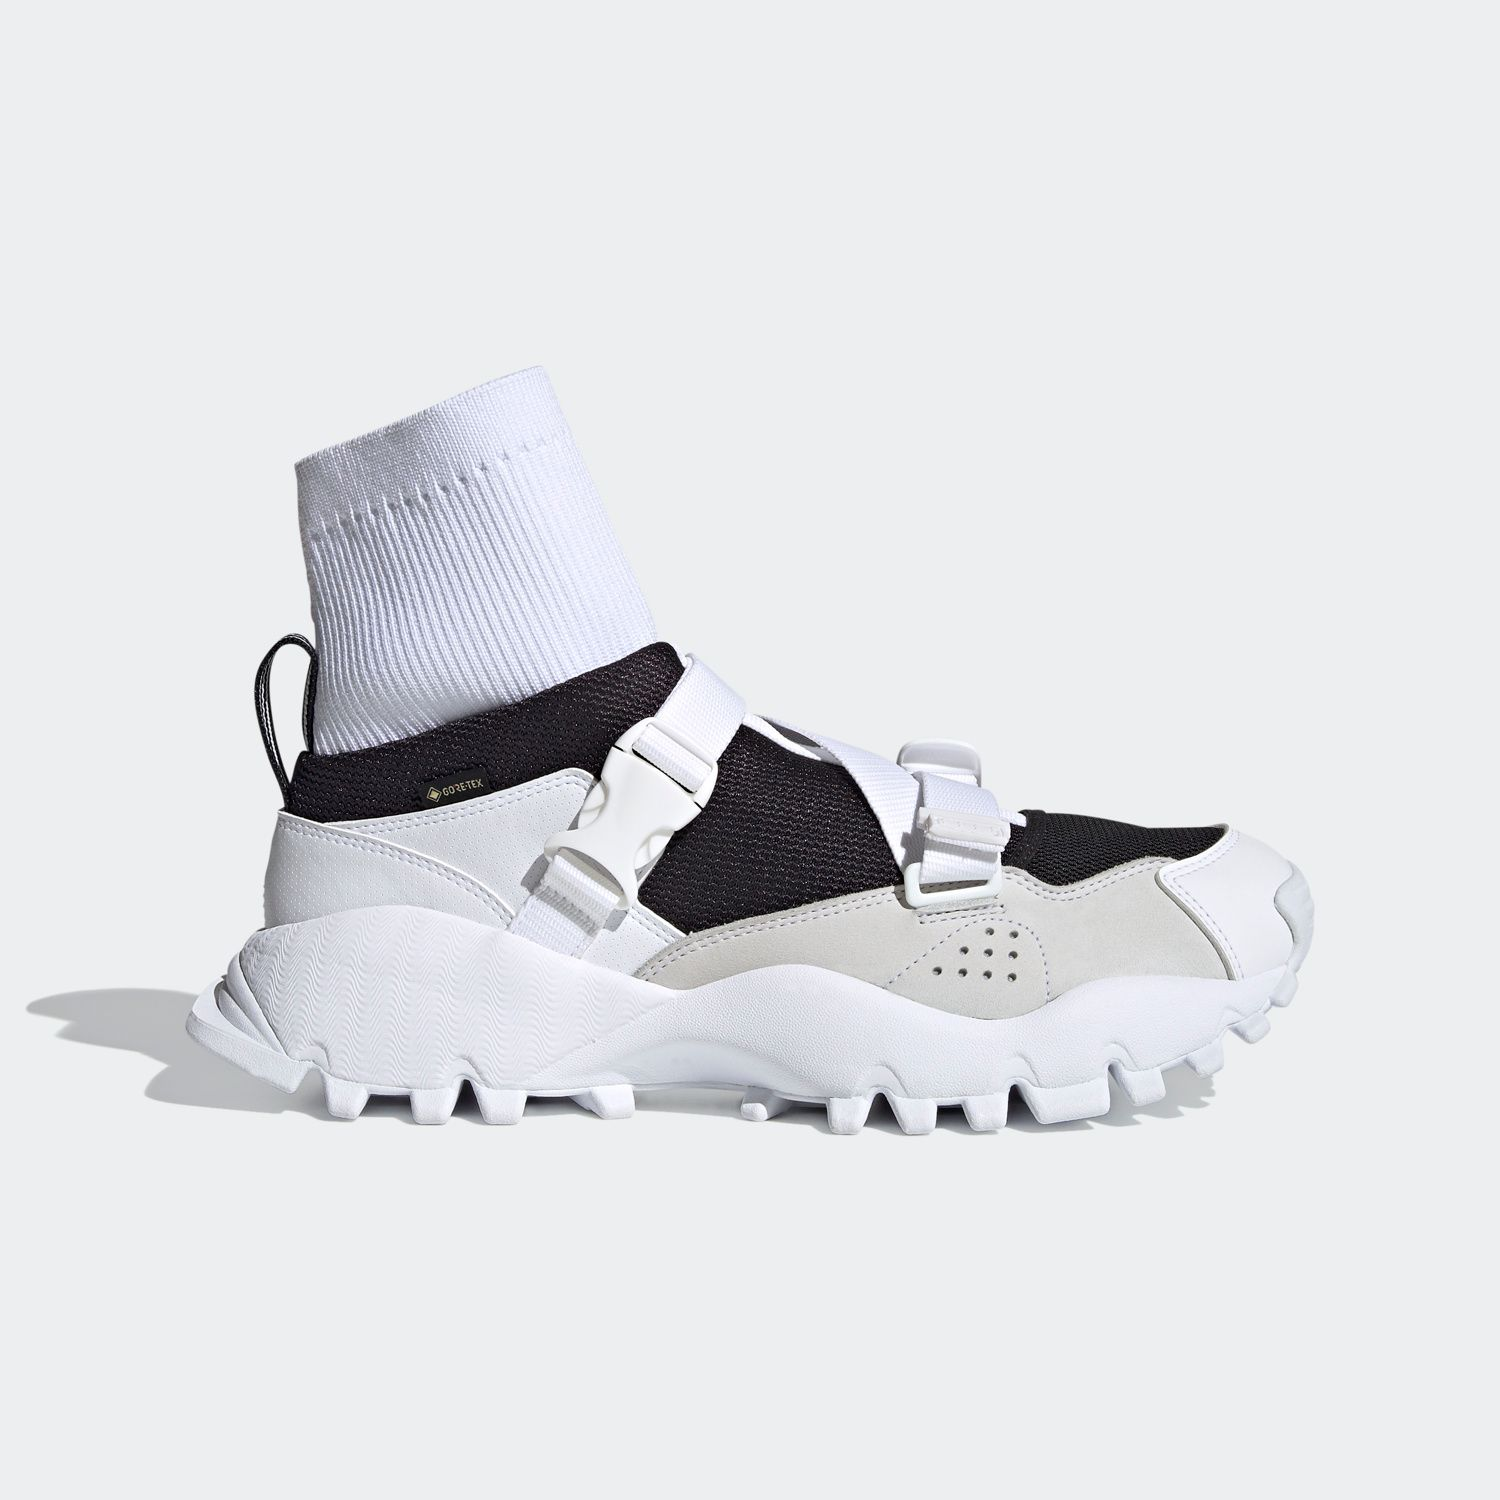 AH-05 High SEE U LATER Gore-Tex  Footwear White [1]